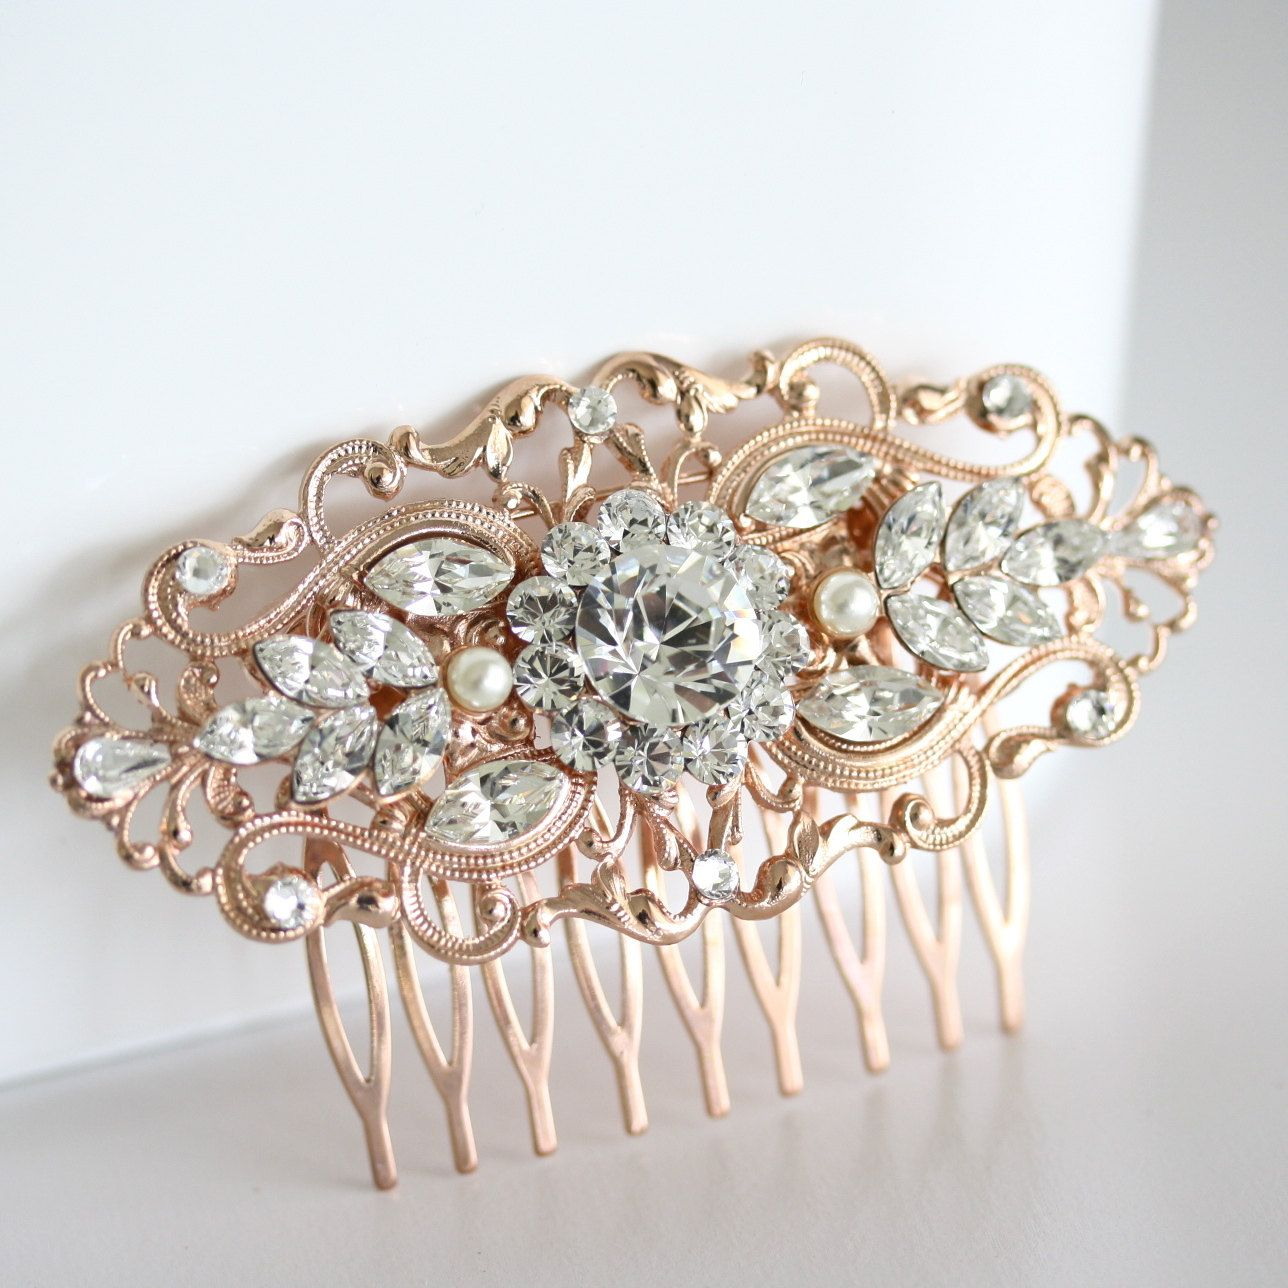 Rose gold wedding hair comb art deco bridal hair accessories vintage